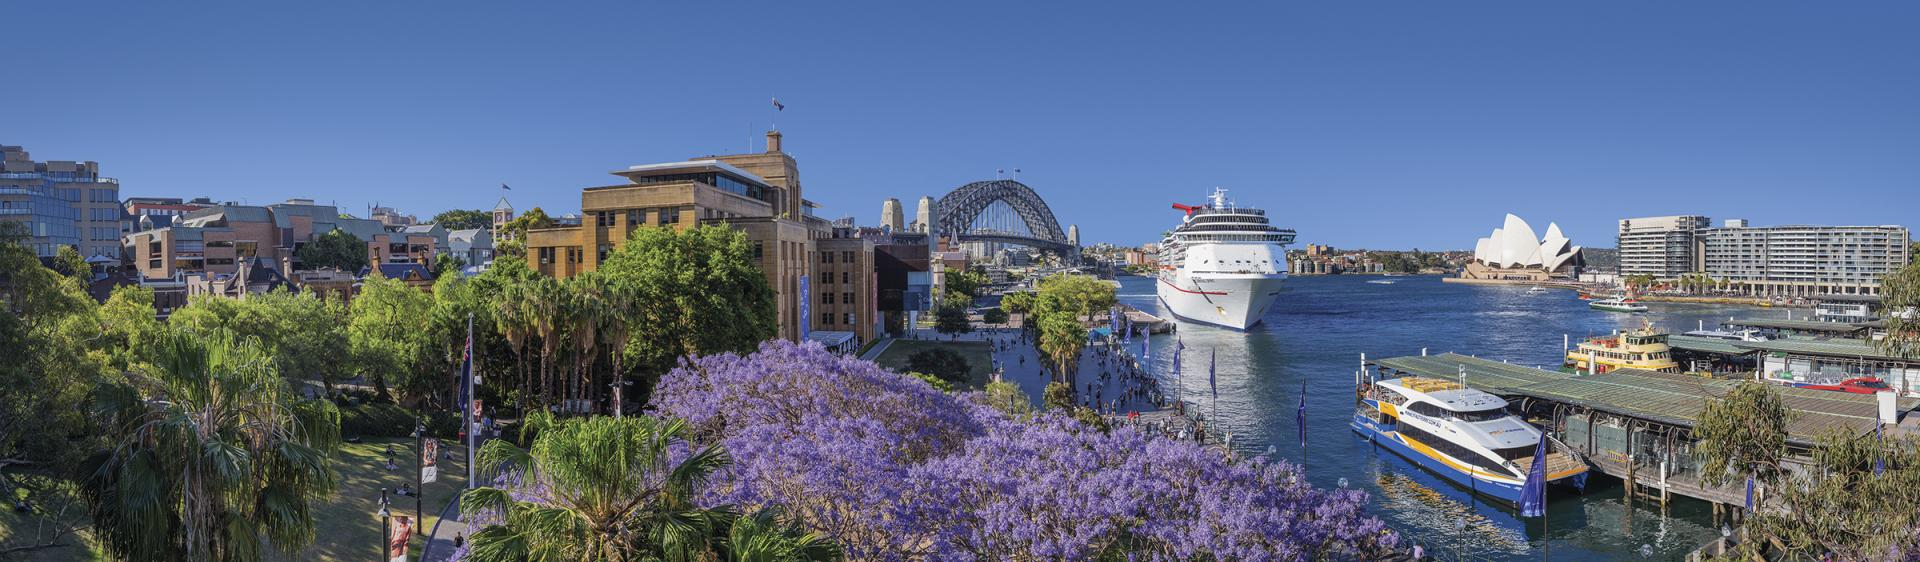 Panorama view of vibrant Jacaranda trees in spring bloom at Circular Quay with views to Sydney harbour